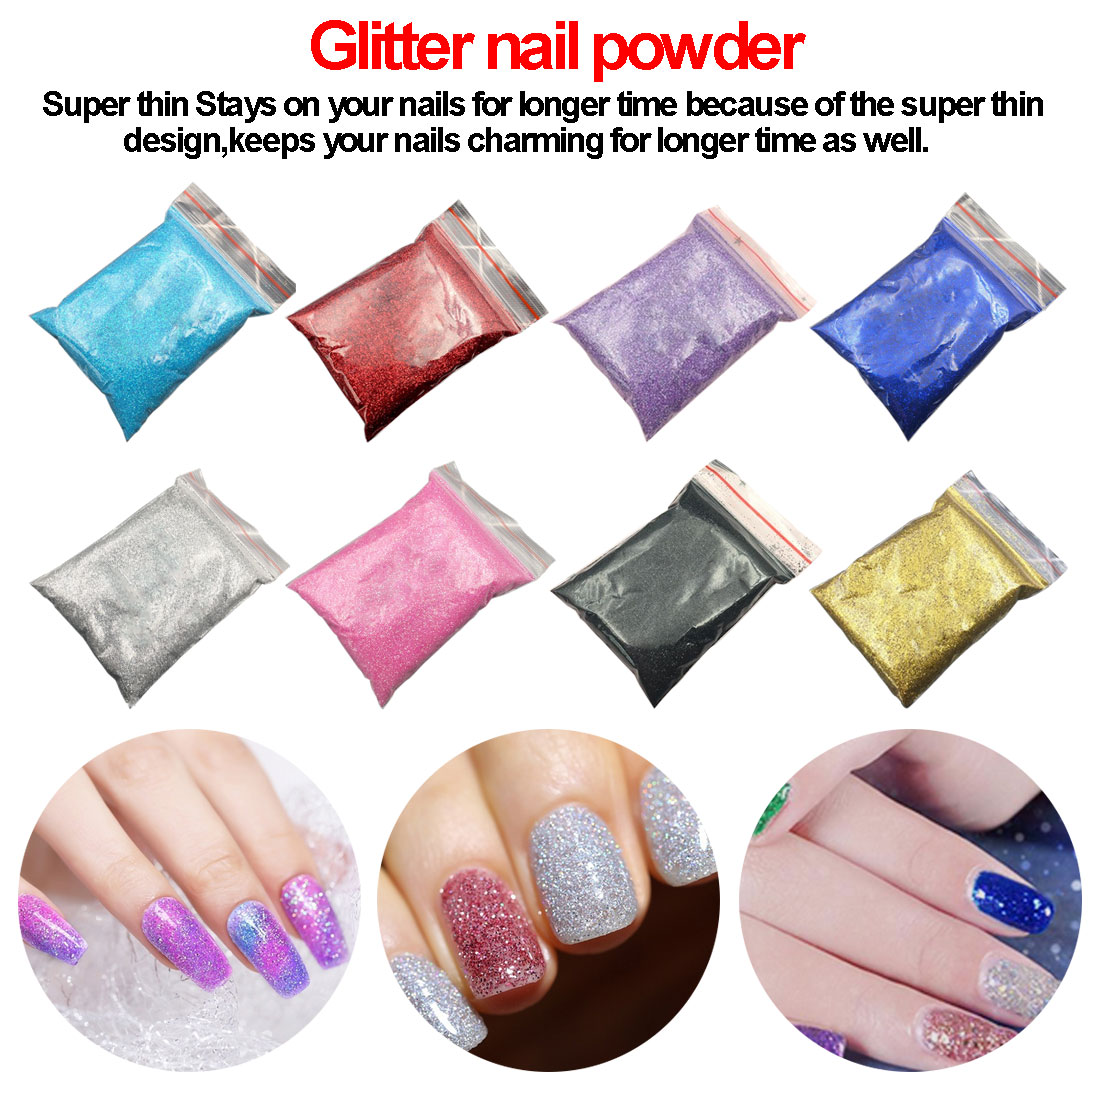 1 Bag Glitter Nail Powder for DIY Nail Art Decoration Purple Blue Silver Nail Pigment Dust Tips Shining Shimmer Manicure